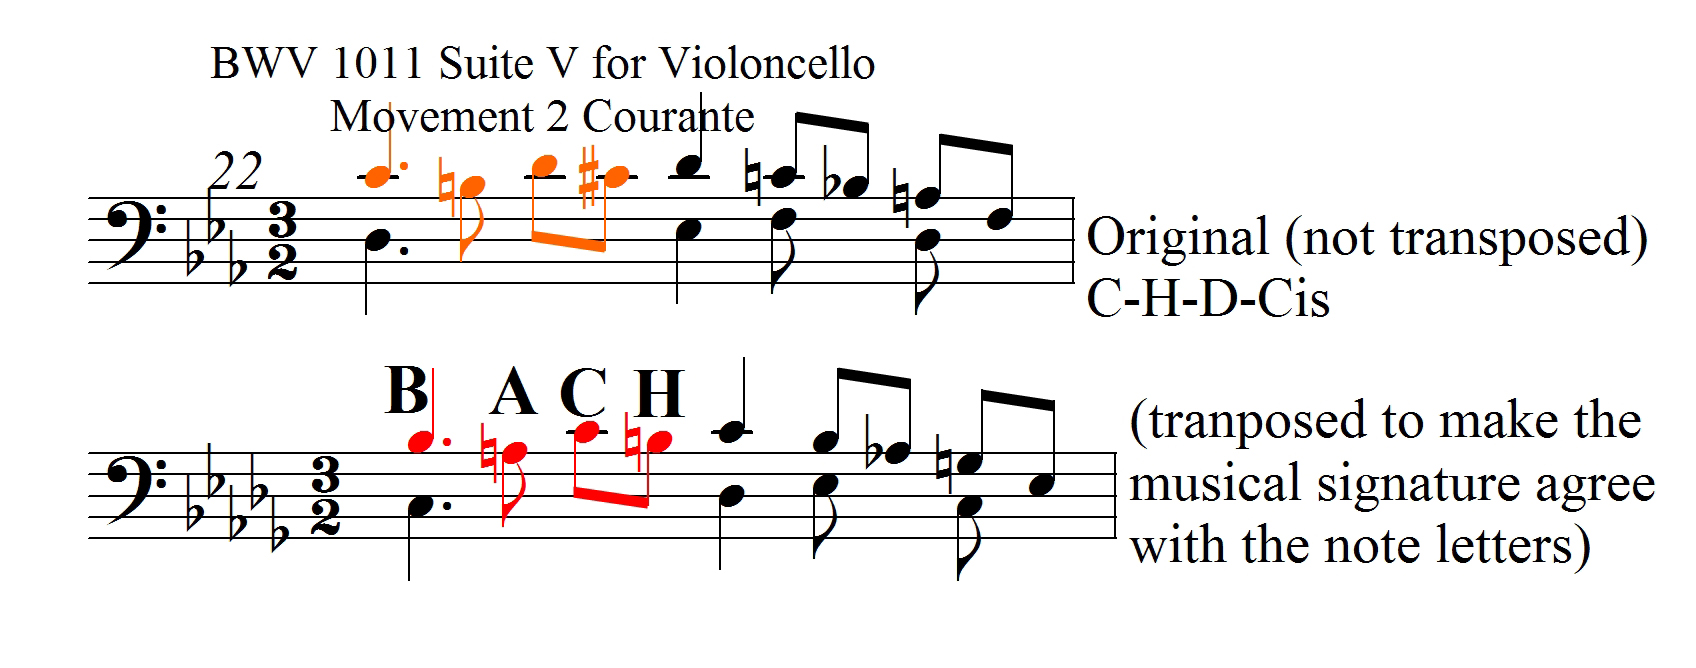 Arrangements & Transcriptions of Bach's Works - Works using the Name